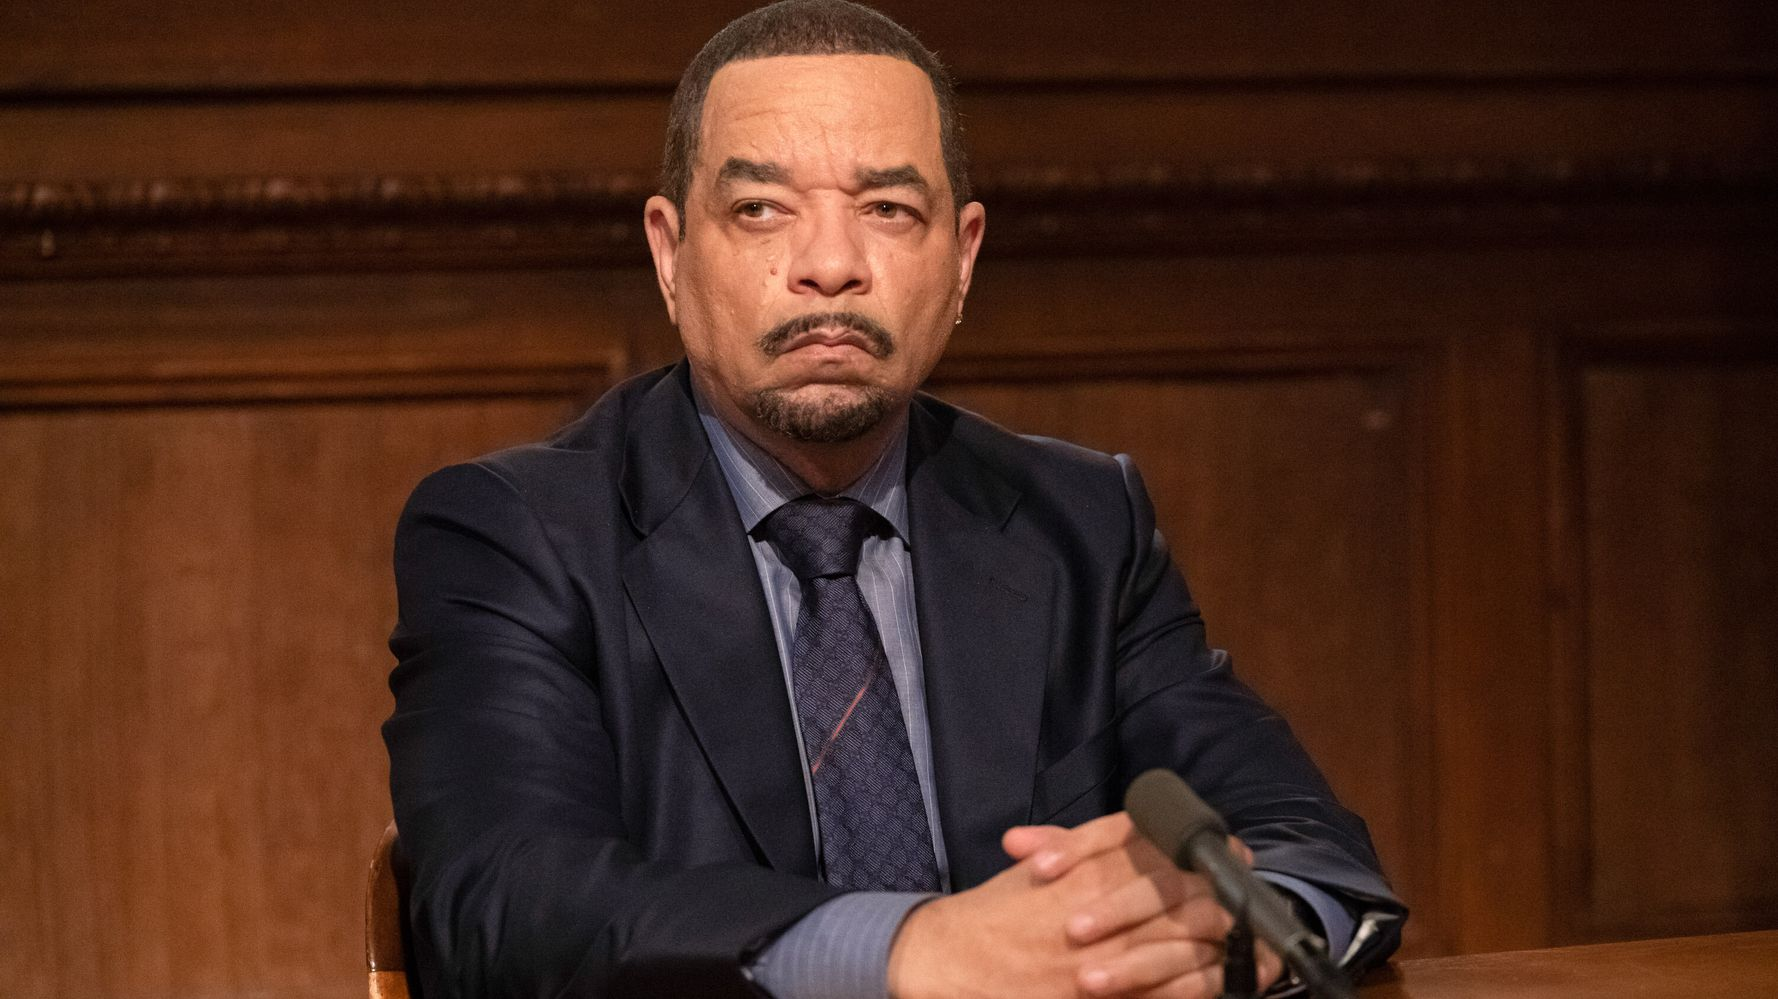 Ice-T: 'No Masker' Father-In-Law Is Now A 'Believer' After COVID-19 Horror